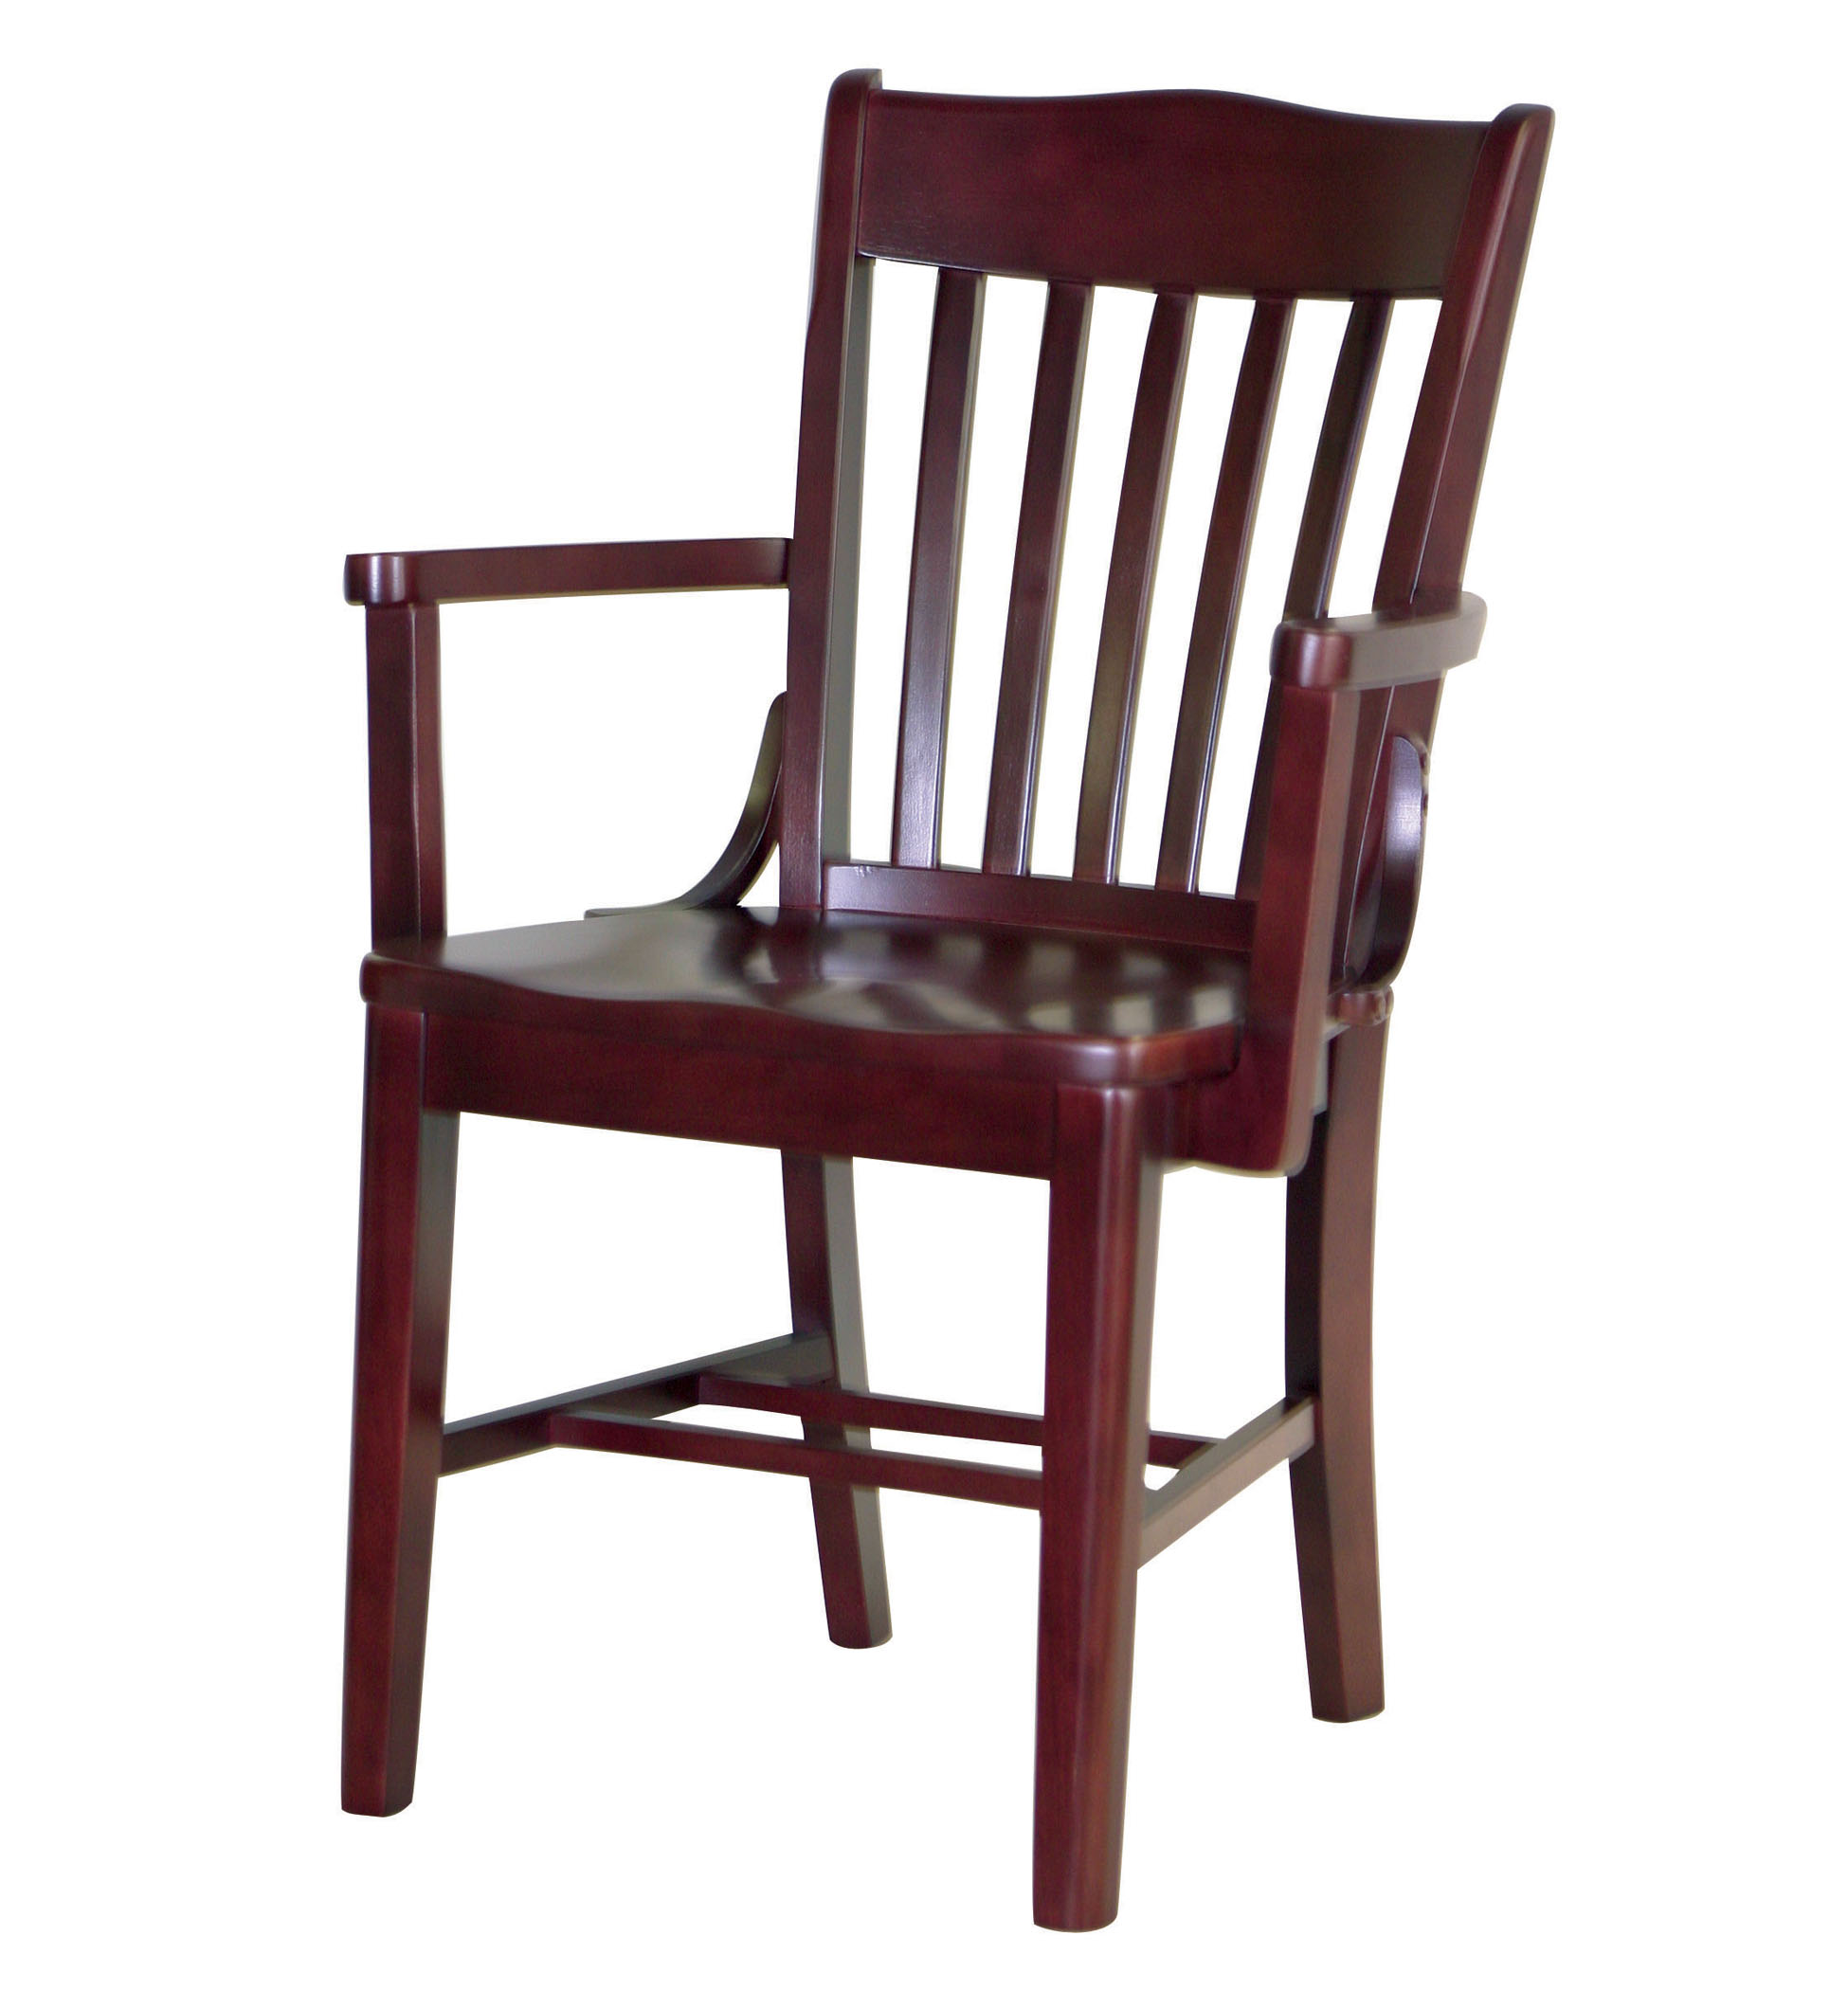 wooden chairs with arms india mid century wicker hoop chair 7035 1 wood arm